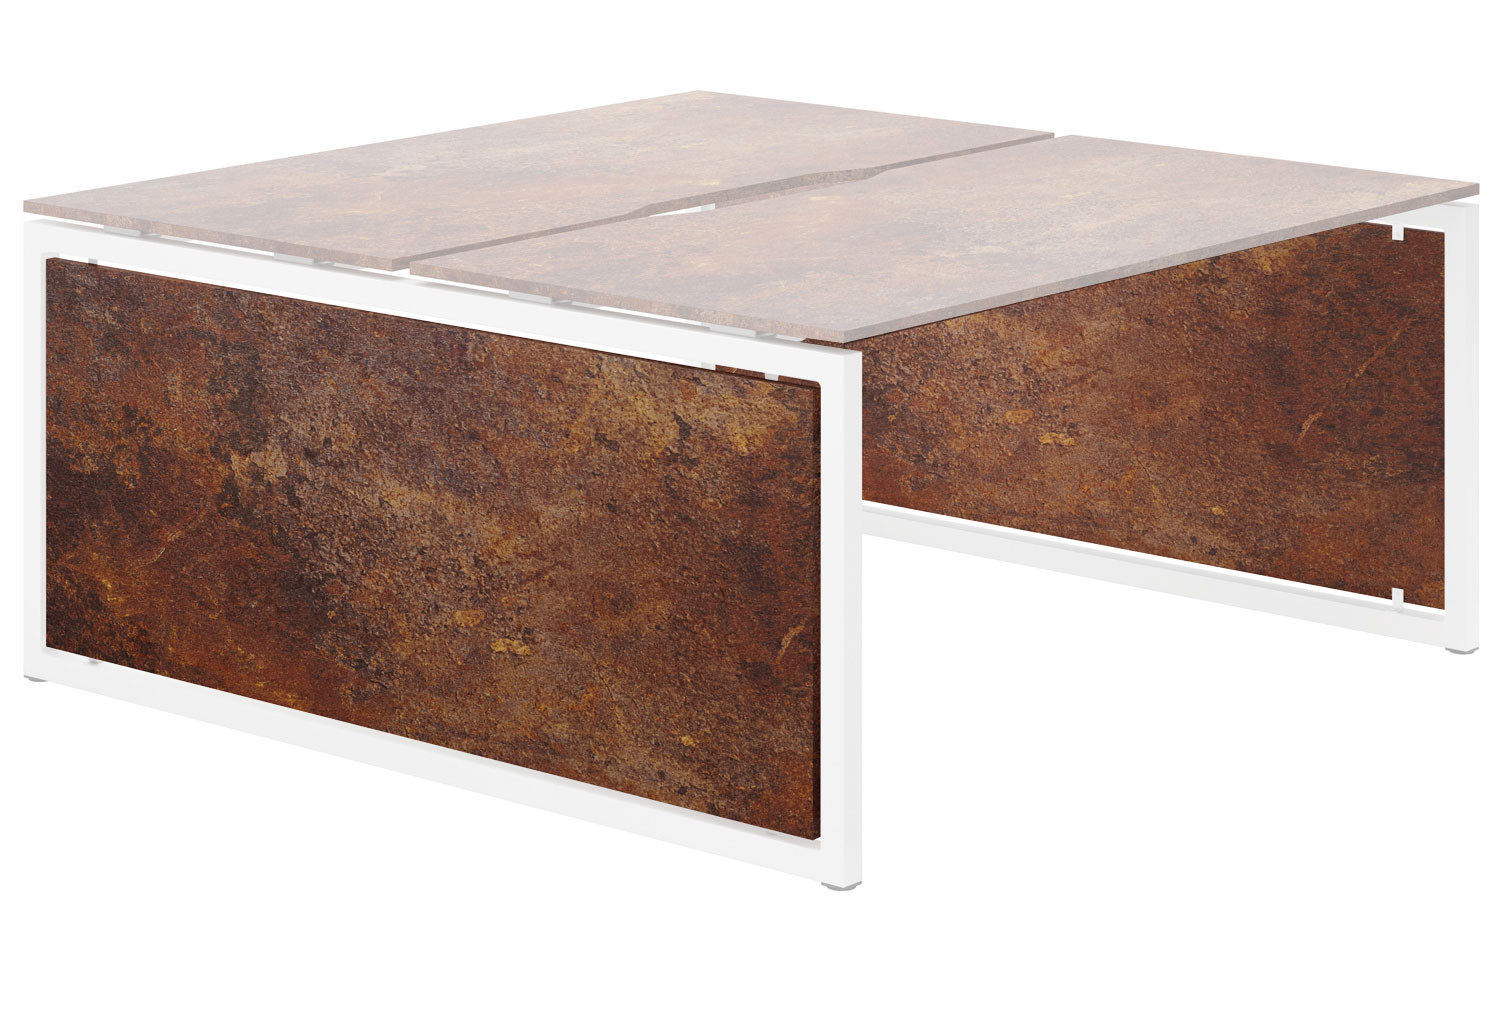 Lasso Infill For Hooped Leg Back To Back Bench Desk (Rusted Steel)